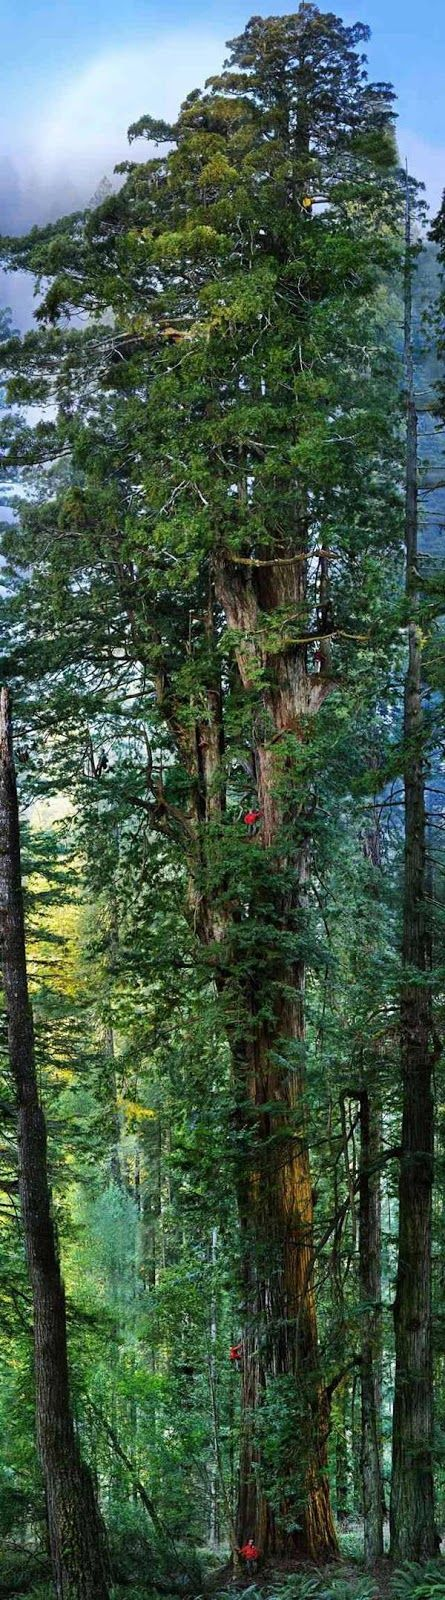 The Giant Redwood Trees - been here but would love to go back